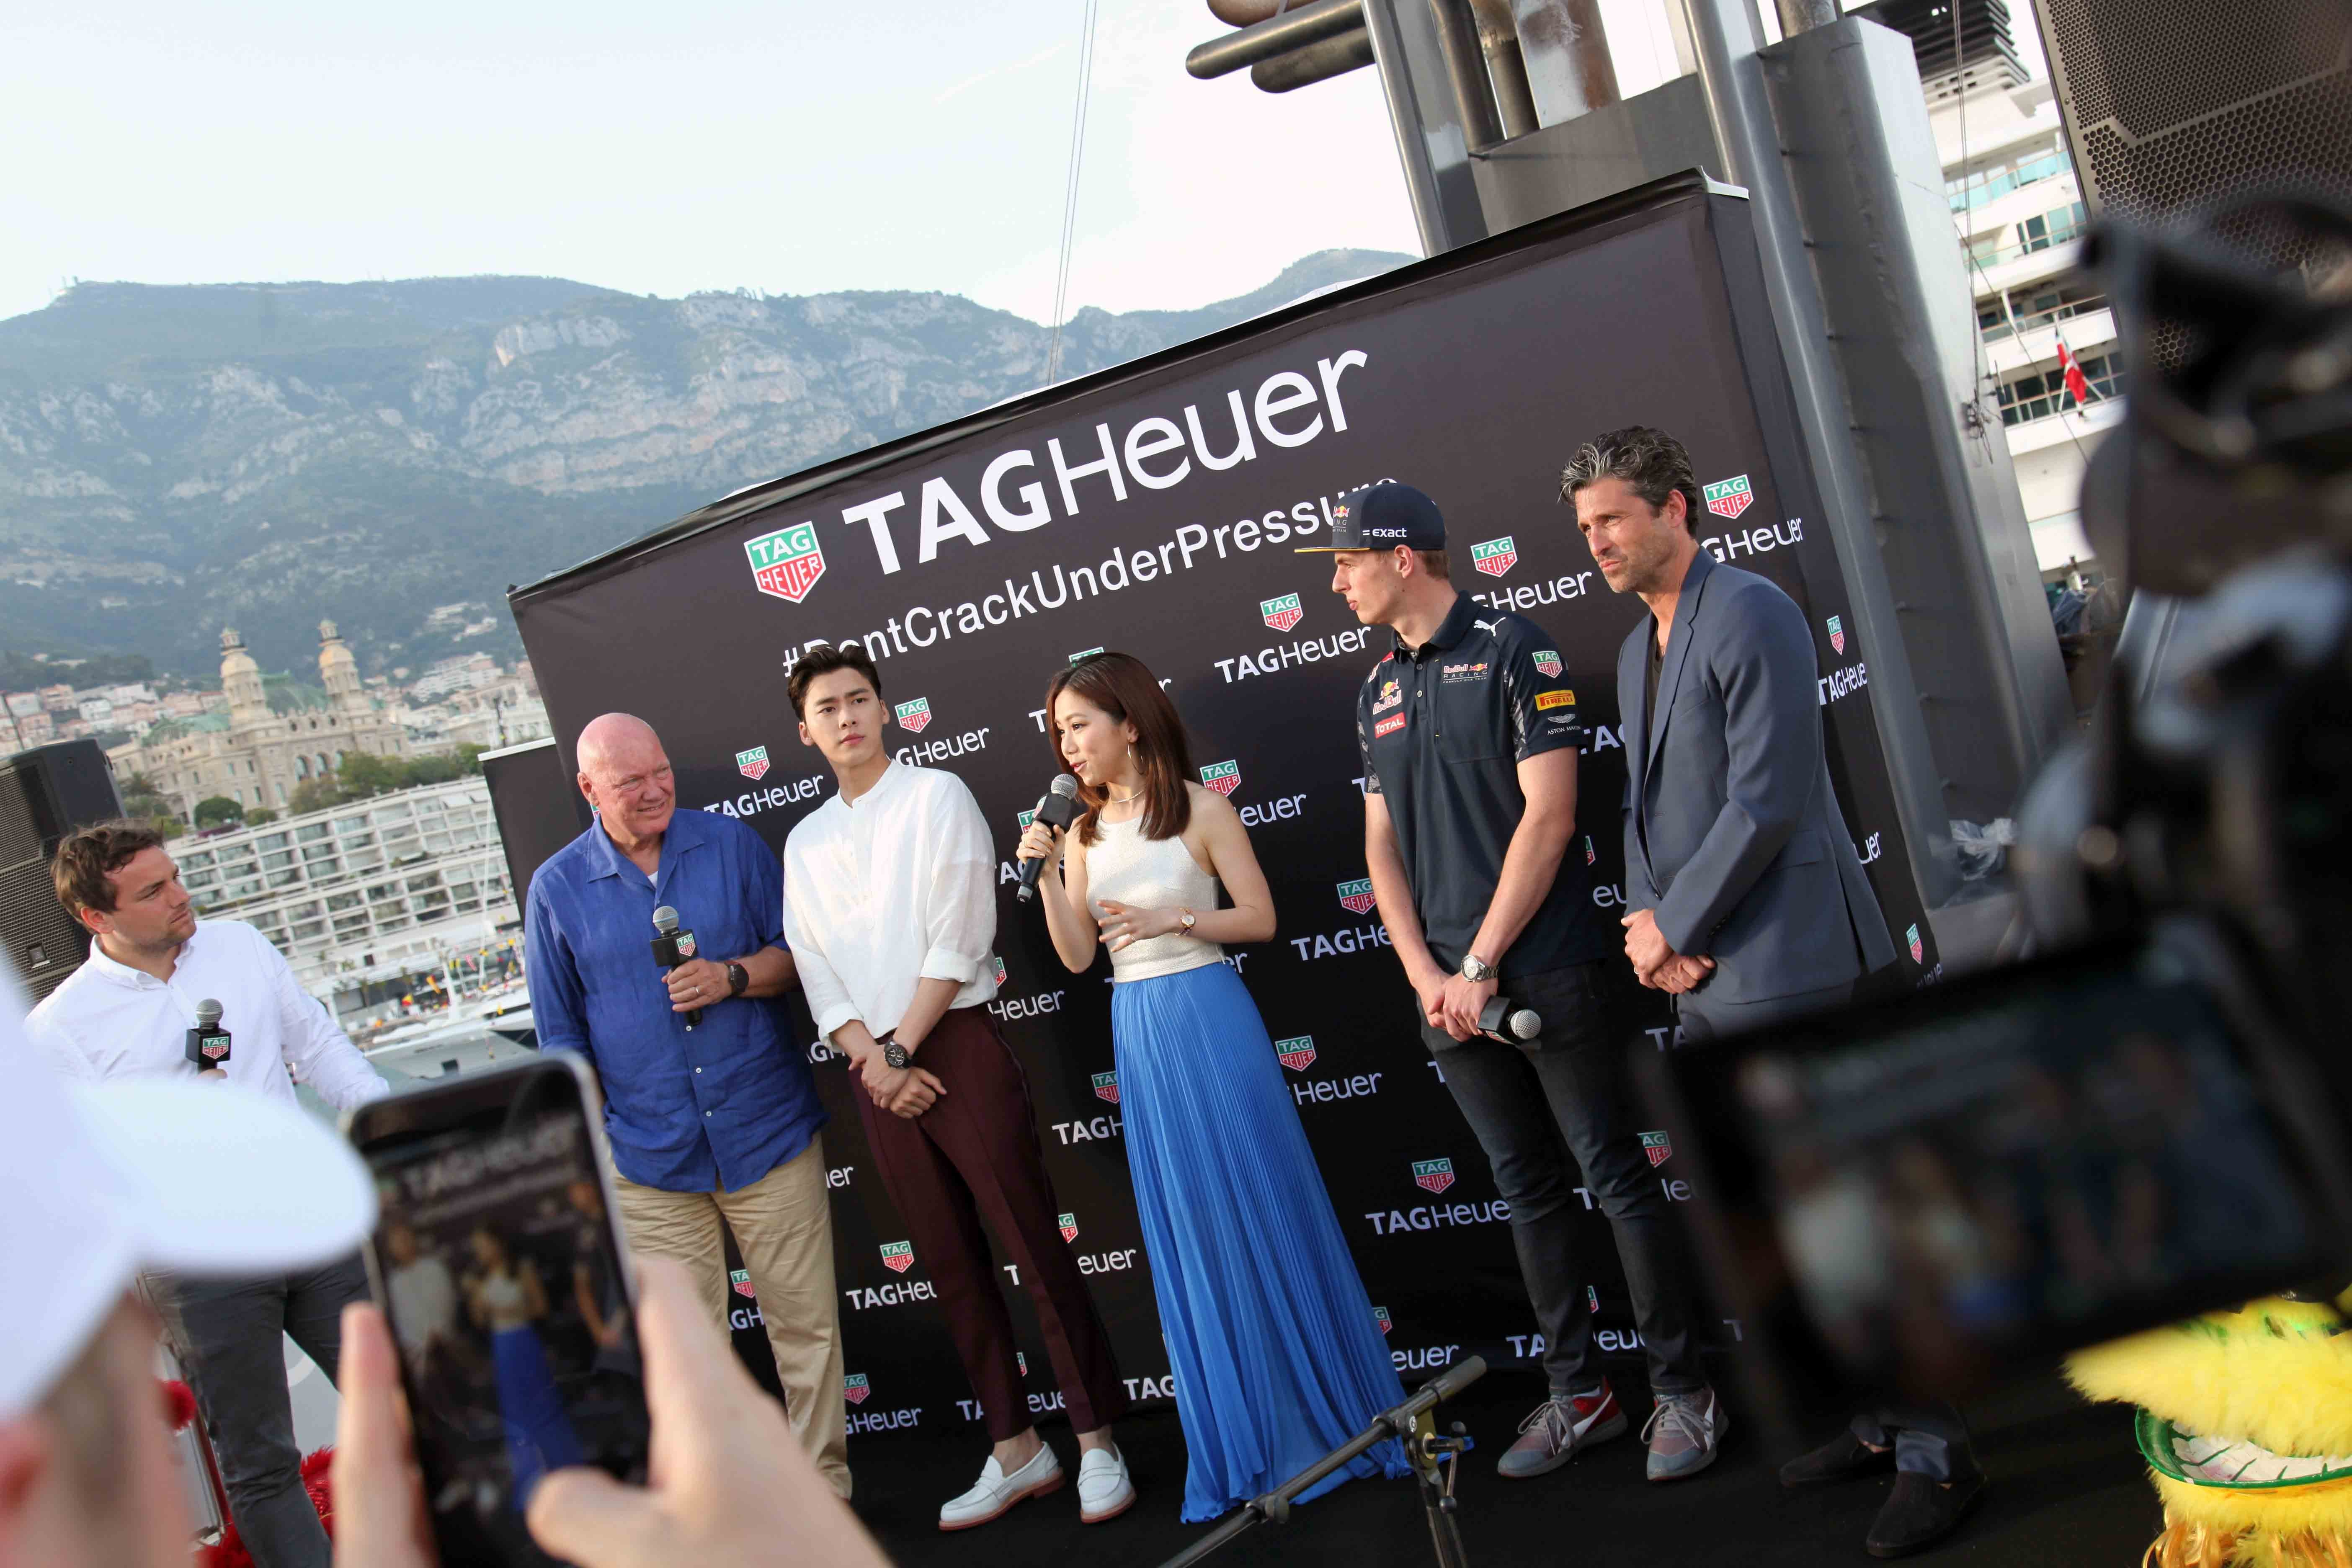 Saturday evening's press conference, on board the yacht.  Photo Report: Behind The Scenes At The Monaco Grand Prix 2016 With TAG Heuer CEO Jean-Claude Biver Photo Report: Behind The Scenes At The Monaco Grand Prix 2016 With TAG Heuer CEO Jean-Claude Biver IMG 0772